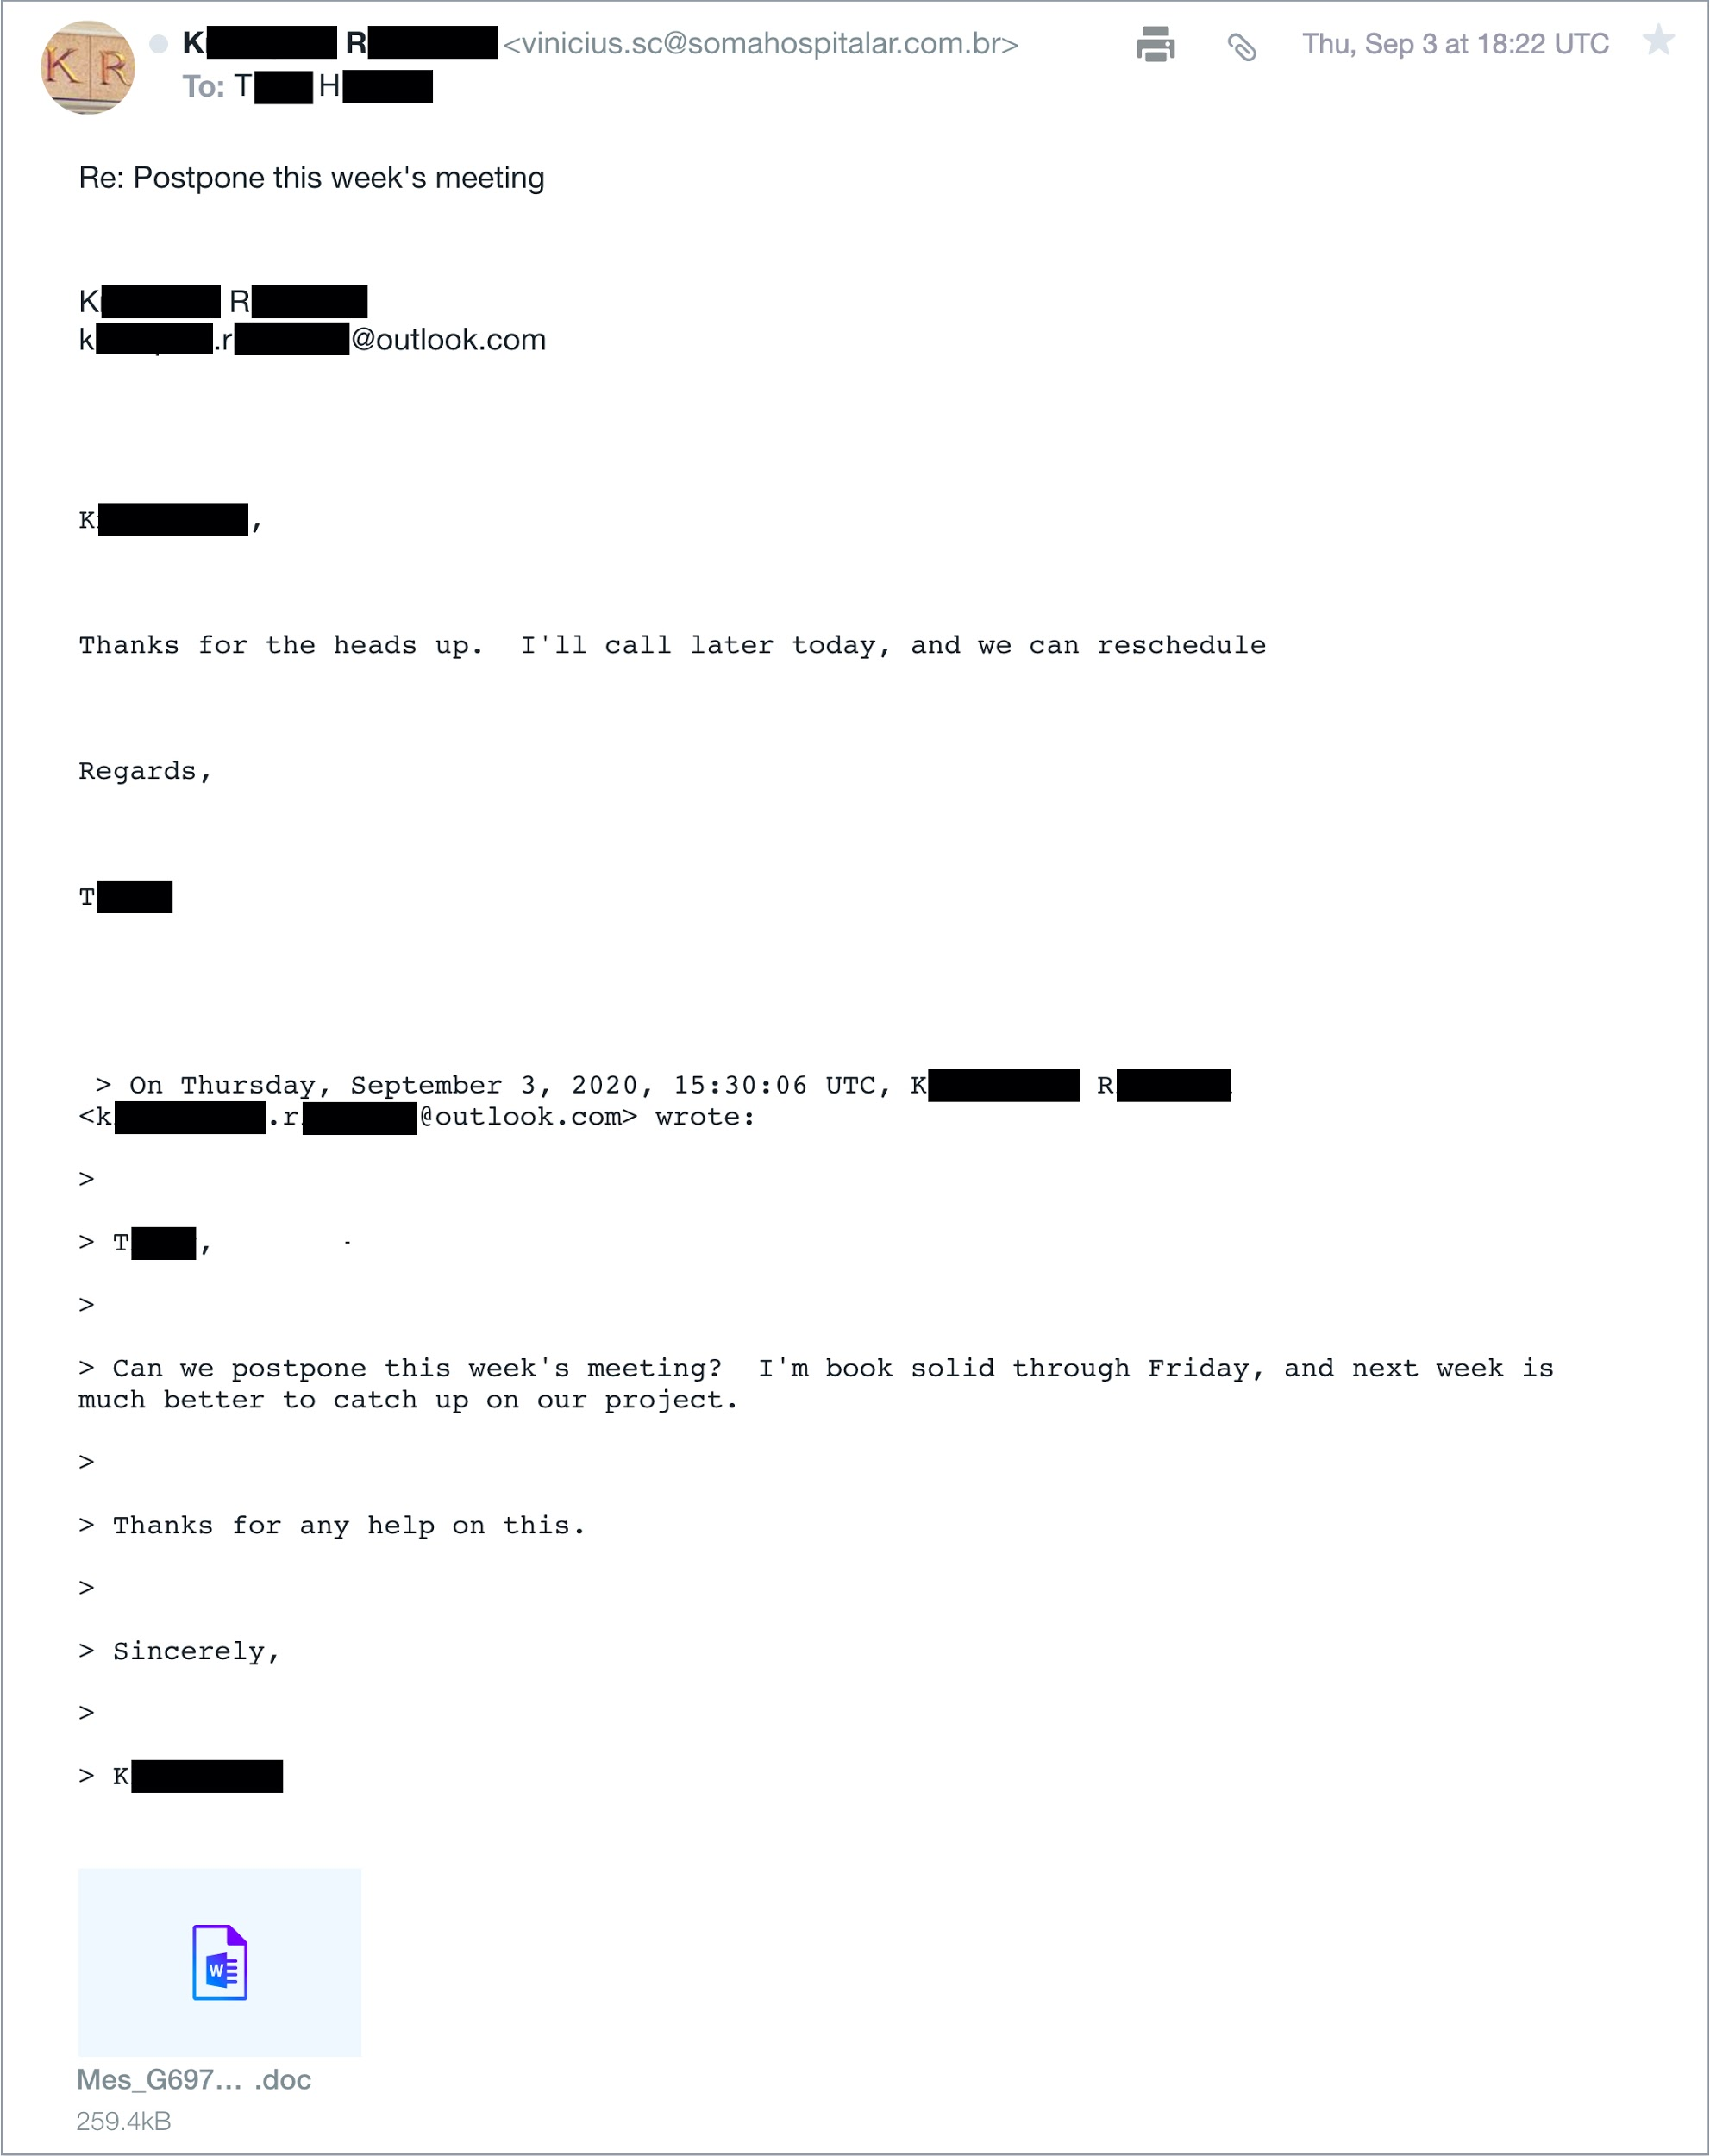 This image shows how the spoofed email appears after thread hijacking. Note the presence of a .doc attachment, which contains macros for Emotet.